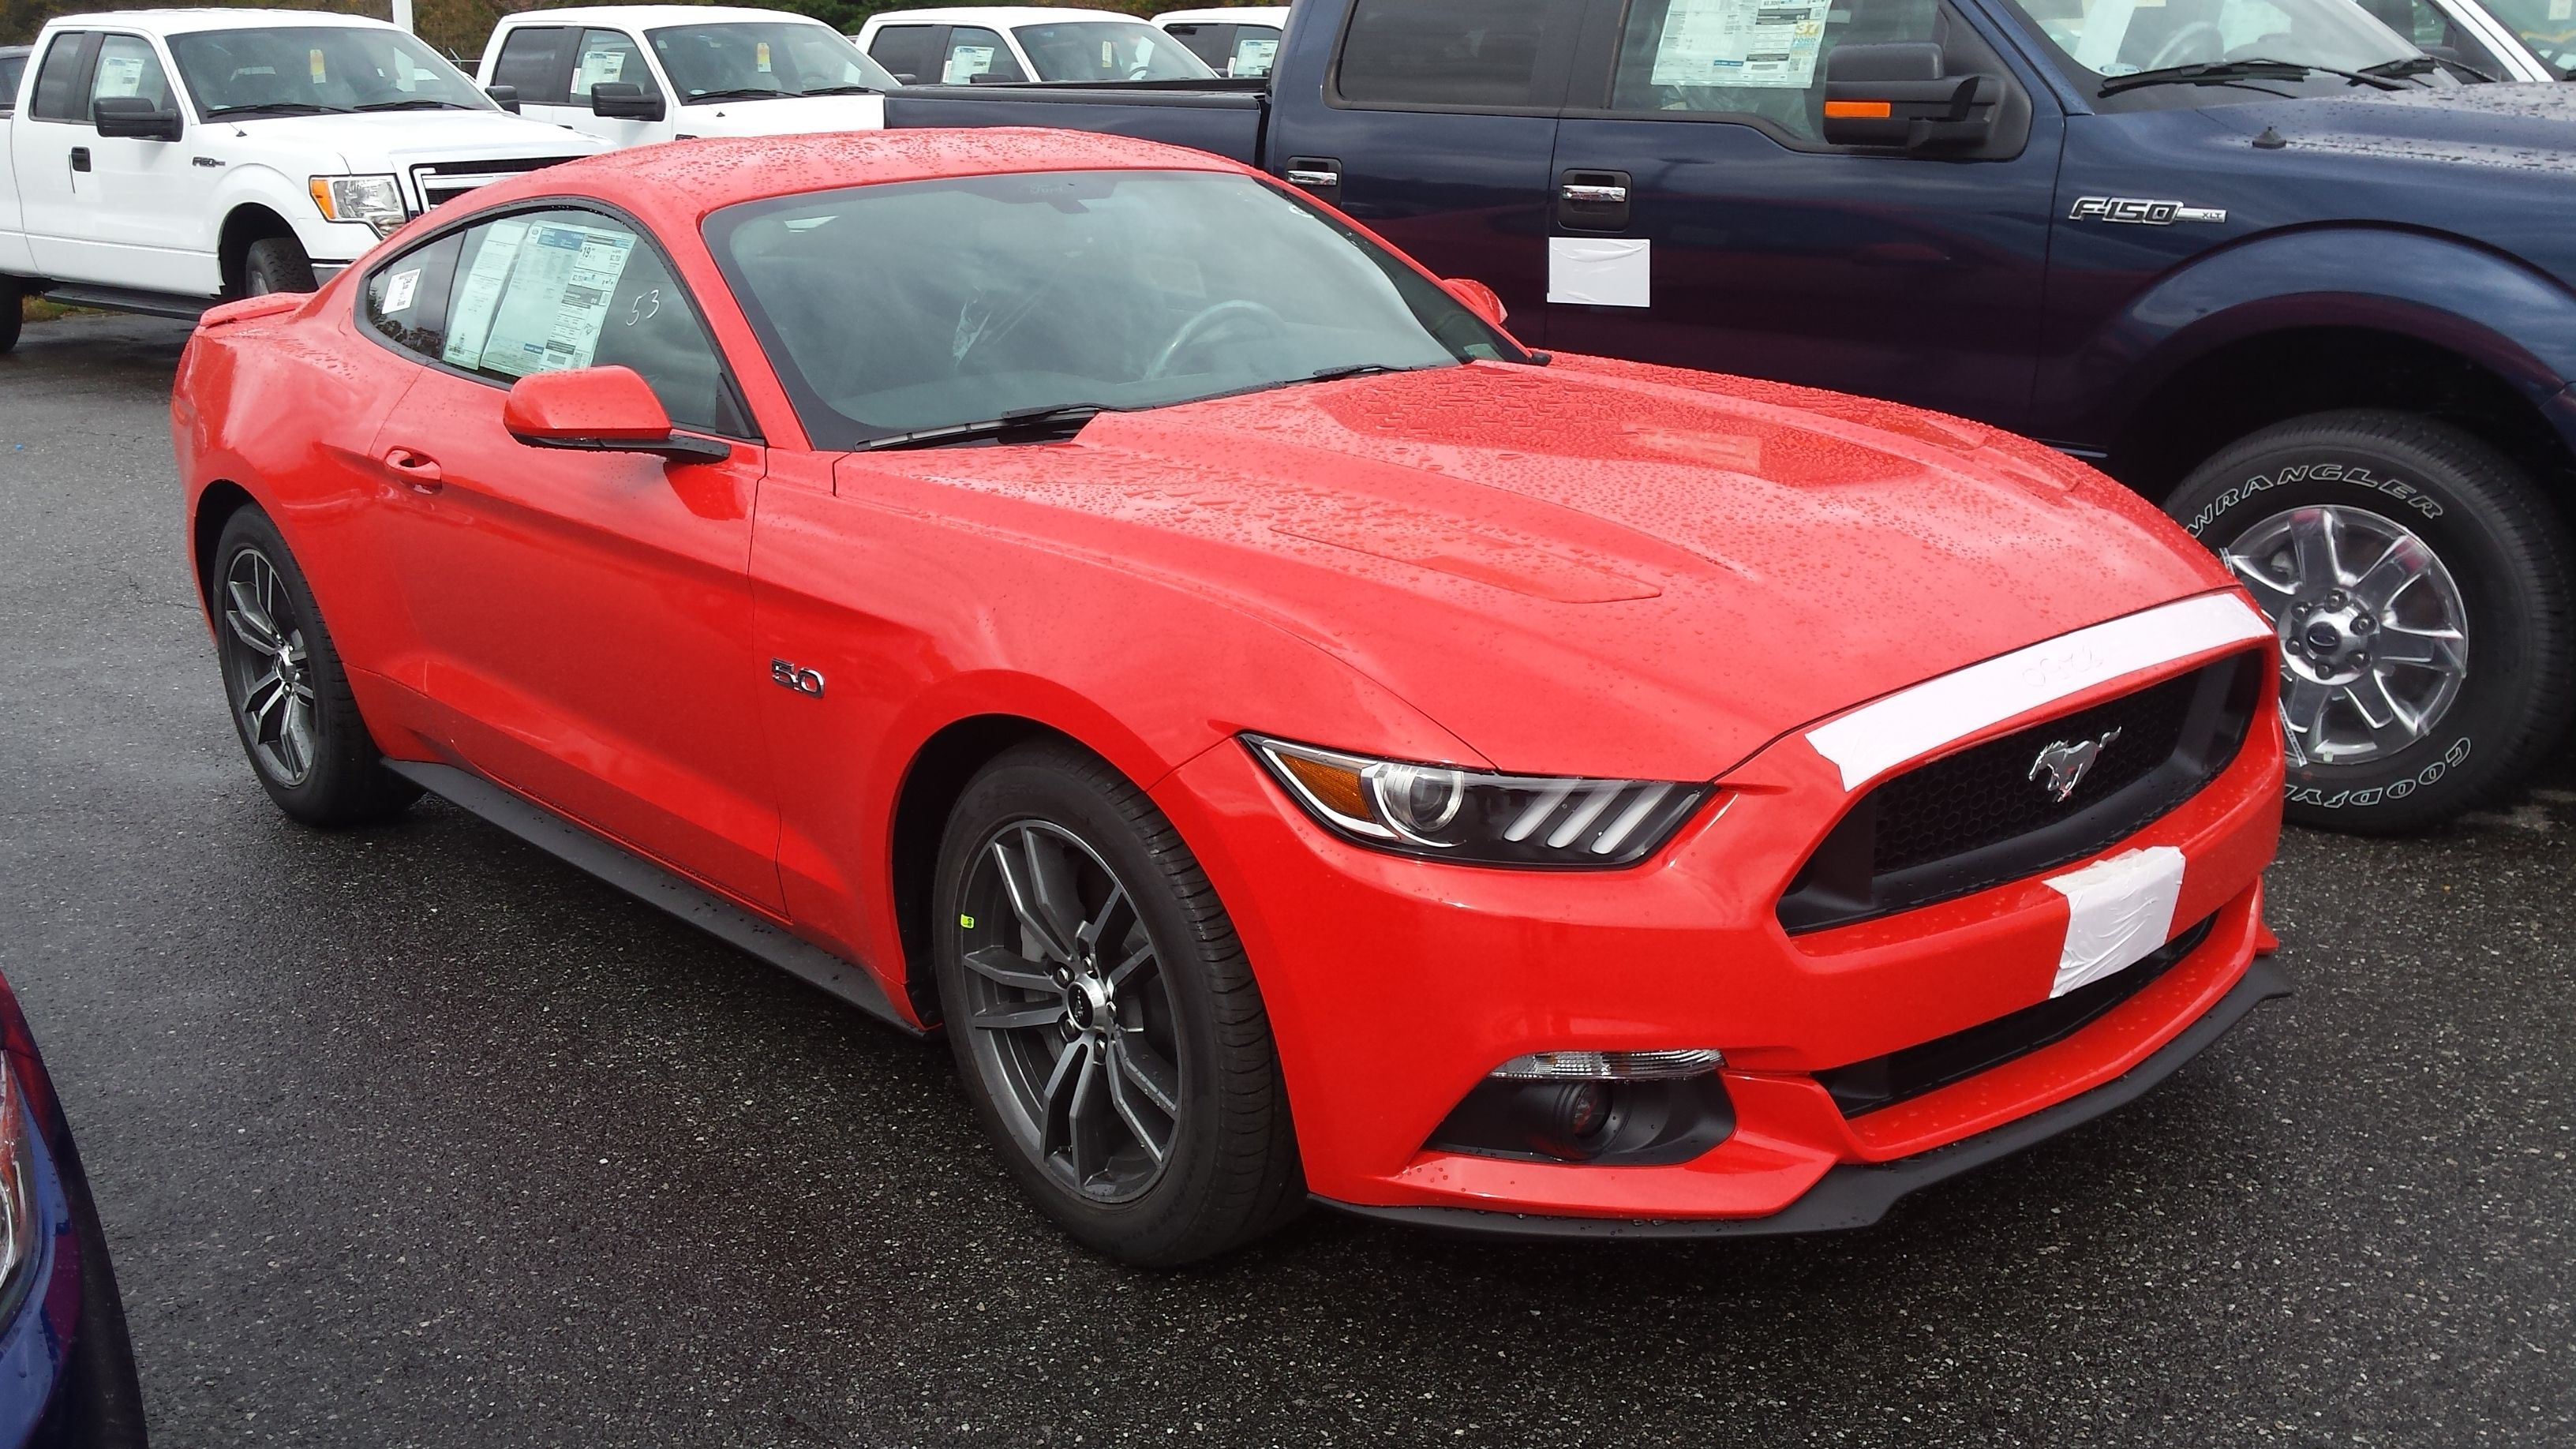 2015 Mustang GT in petition Orange even though it looks red in